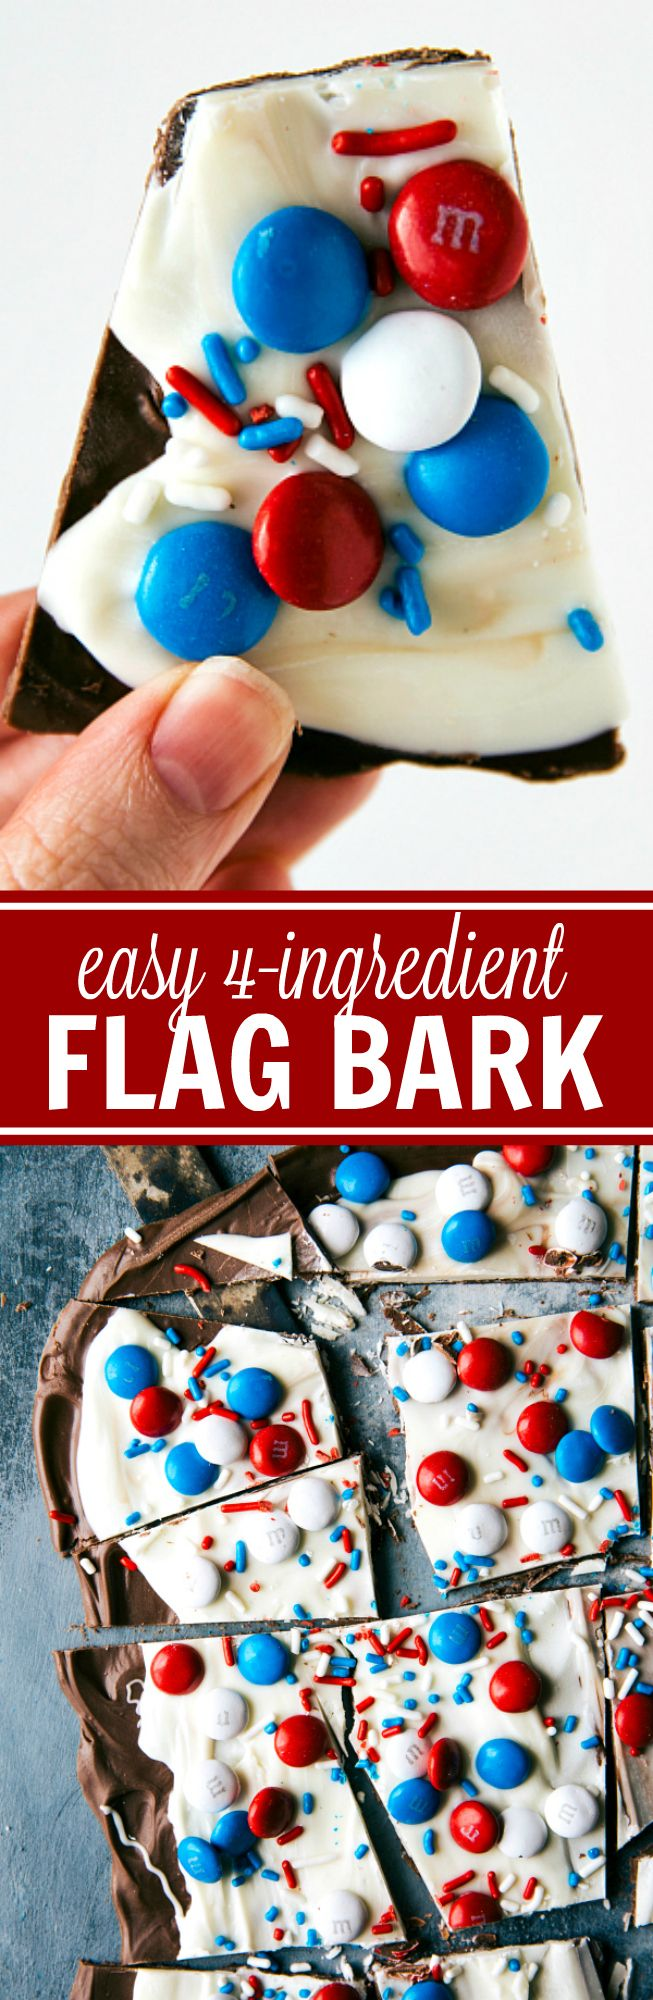 FOUR INGREDIENT Patriotic Fourth of July or Memorial Day Treat! Flag bark made with only 4 easy ingredients. This bark is no bake, quick to assemble, and kid friendly! Recipe is from chelseasmessyapron.com